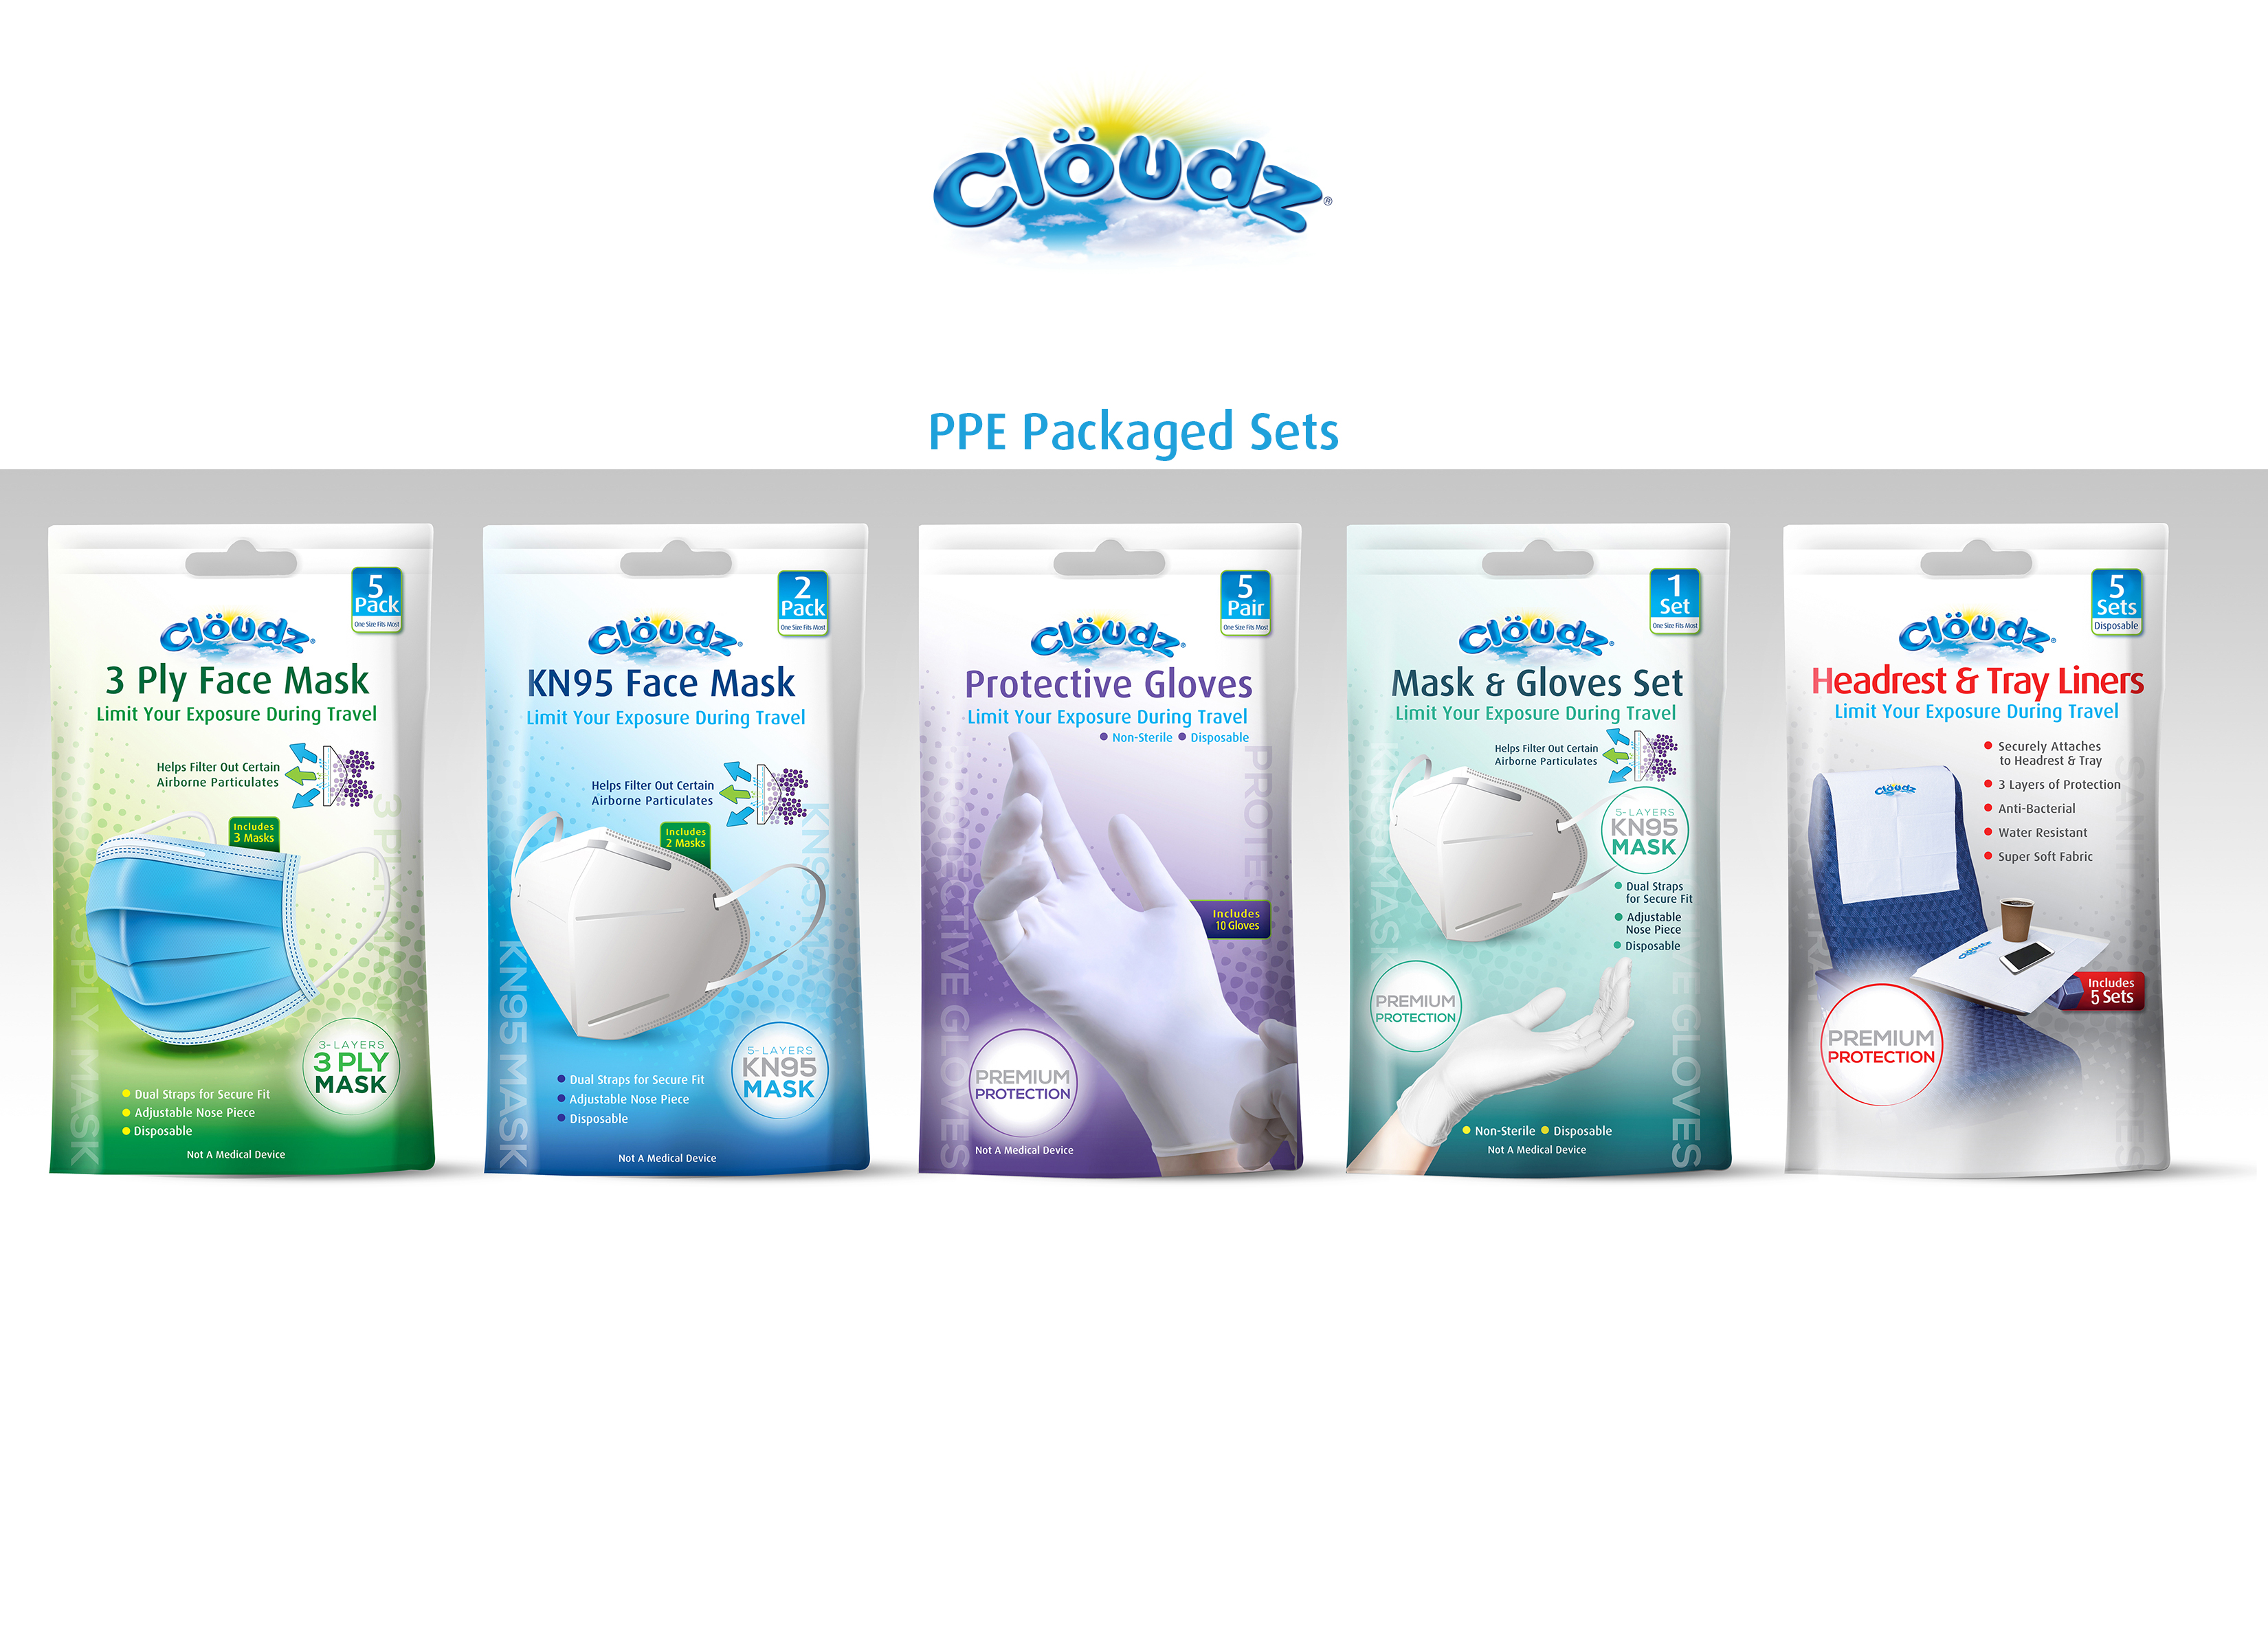 Cloudz PPE Packaged Sets 5-29-20